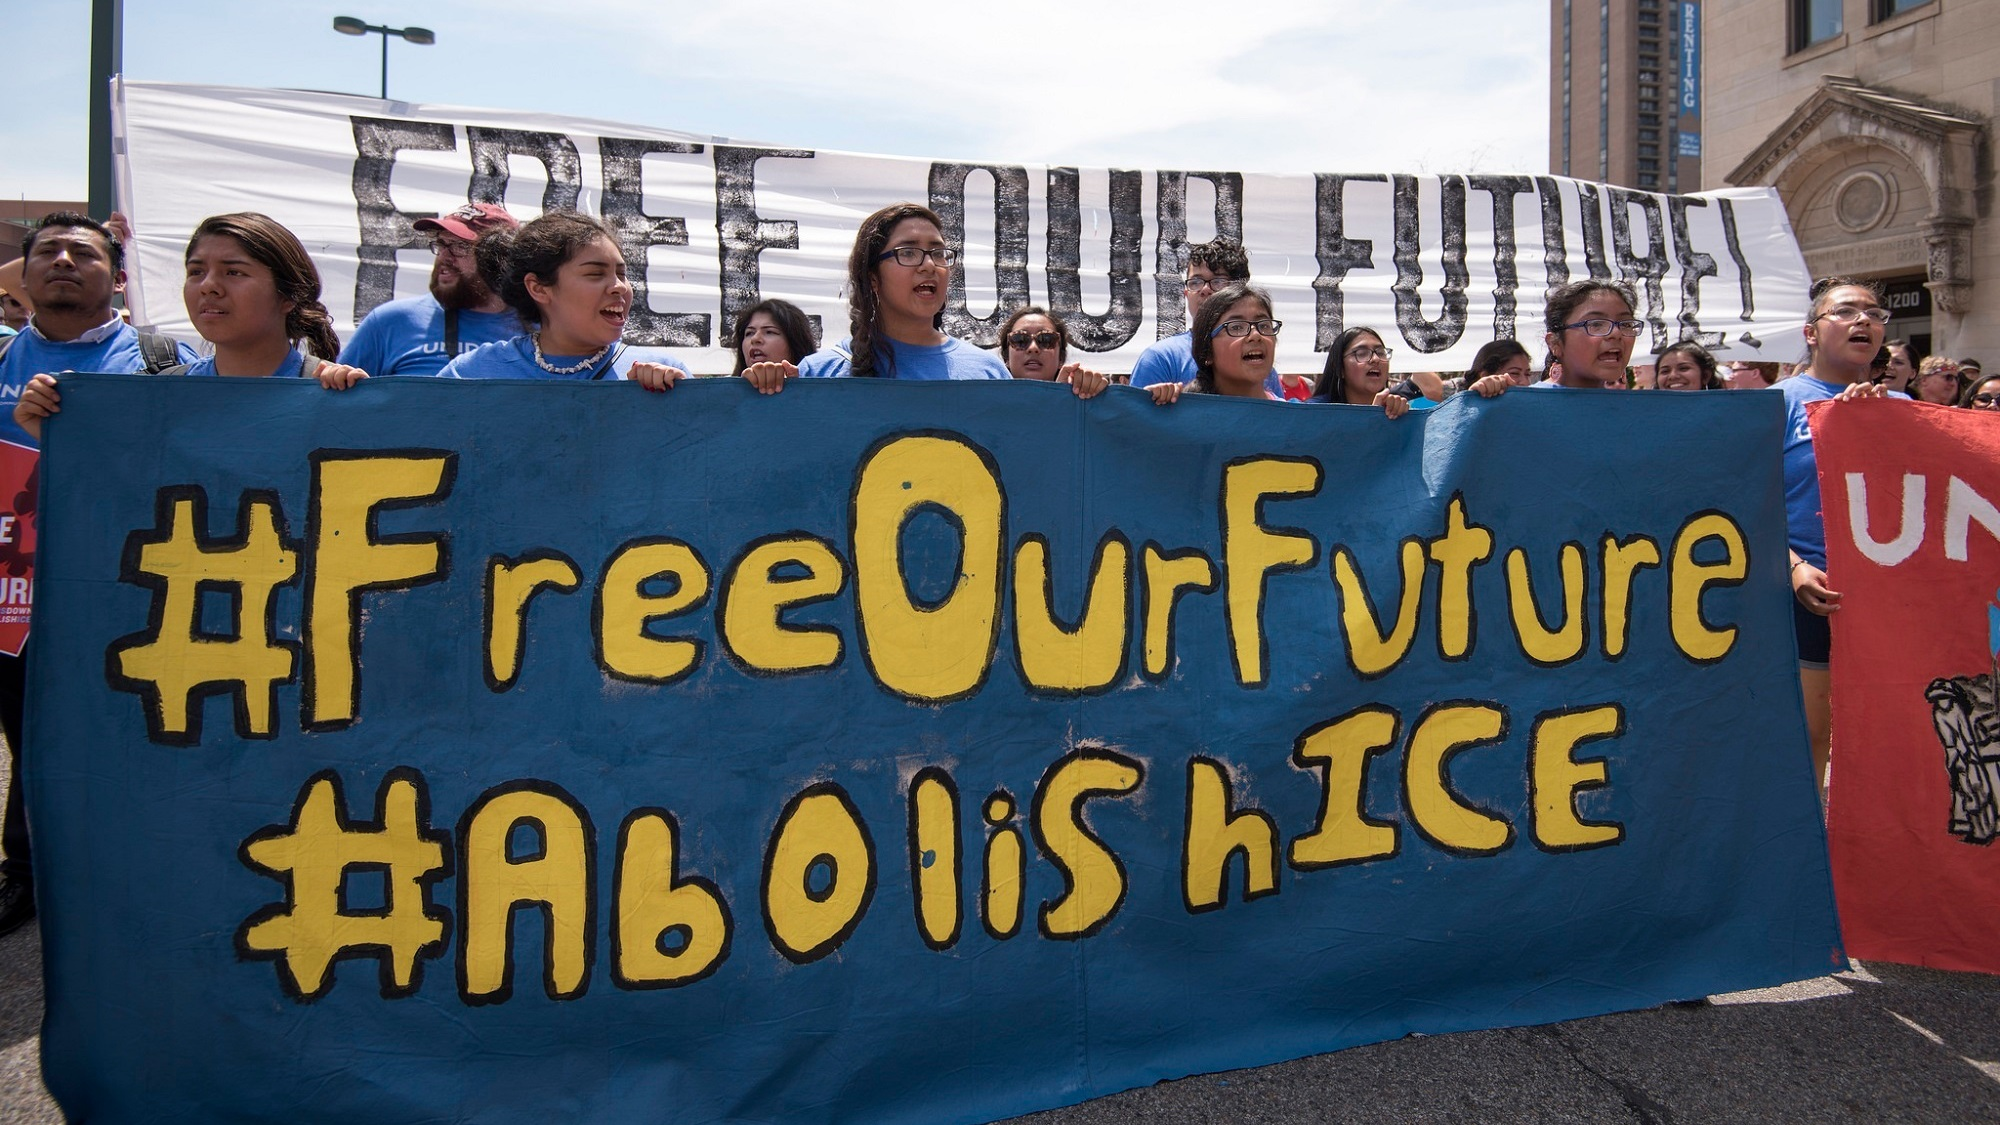 What's driving the movement to Abolish ICE?